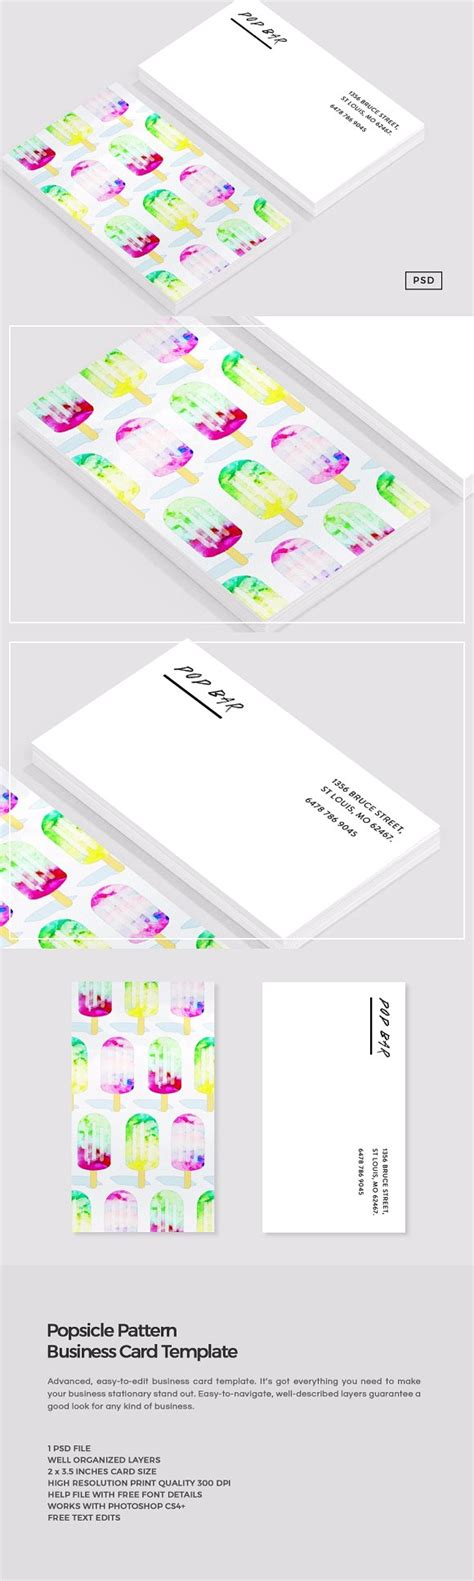 popsicle card template watercolor popsicle business card business card